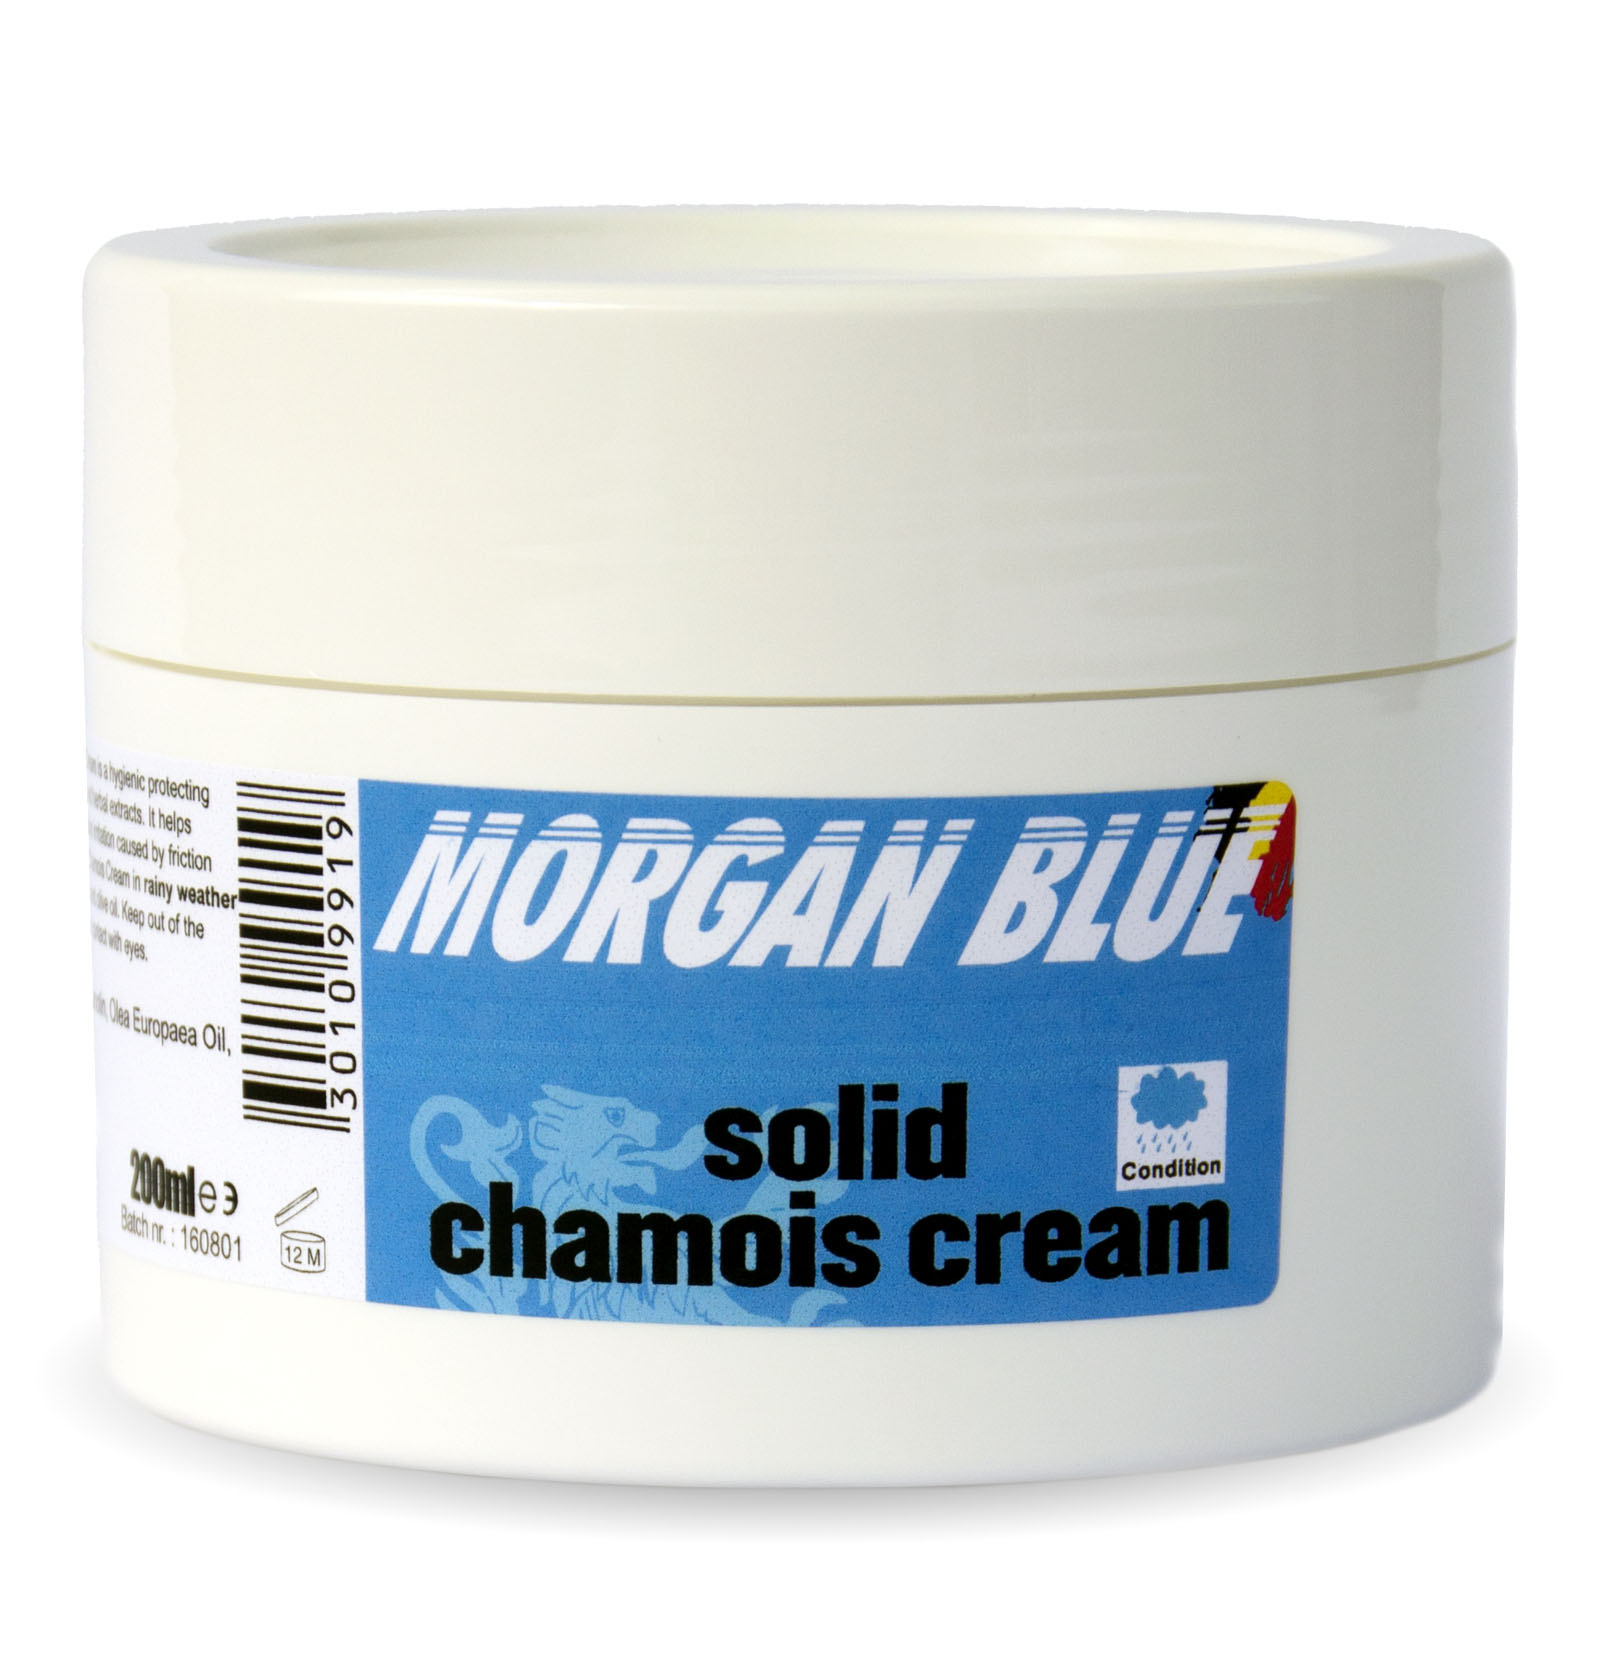 Morgan Blue Chamois cream